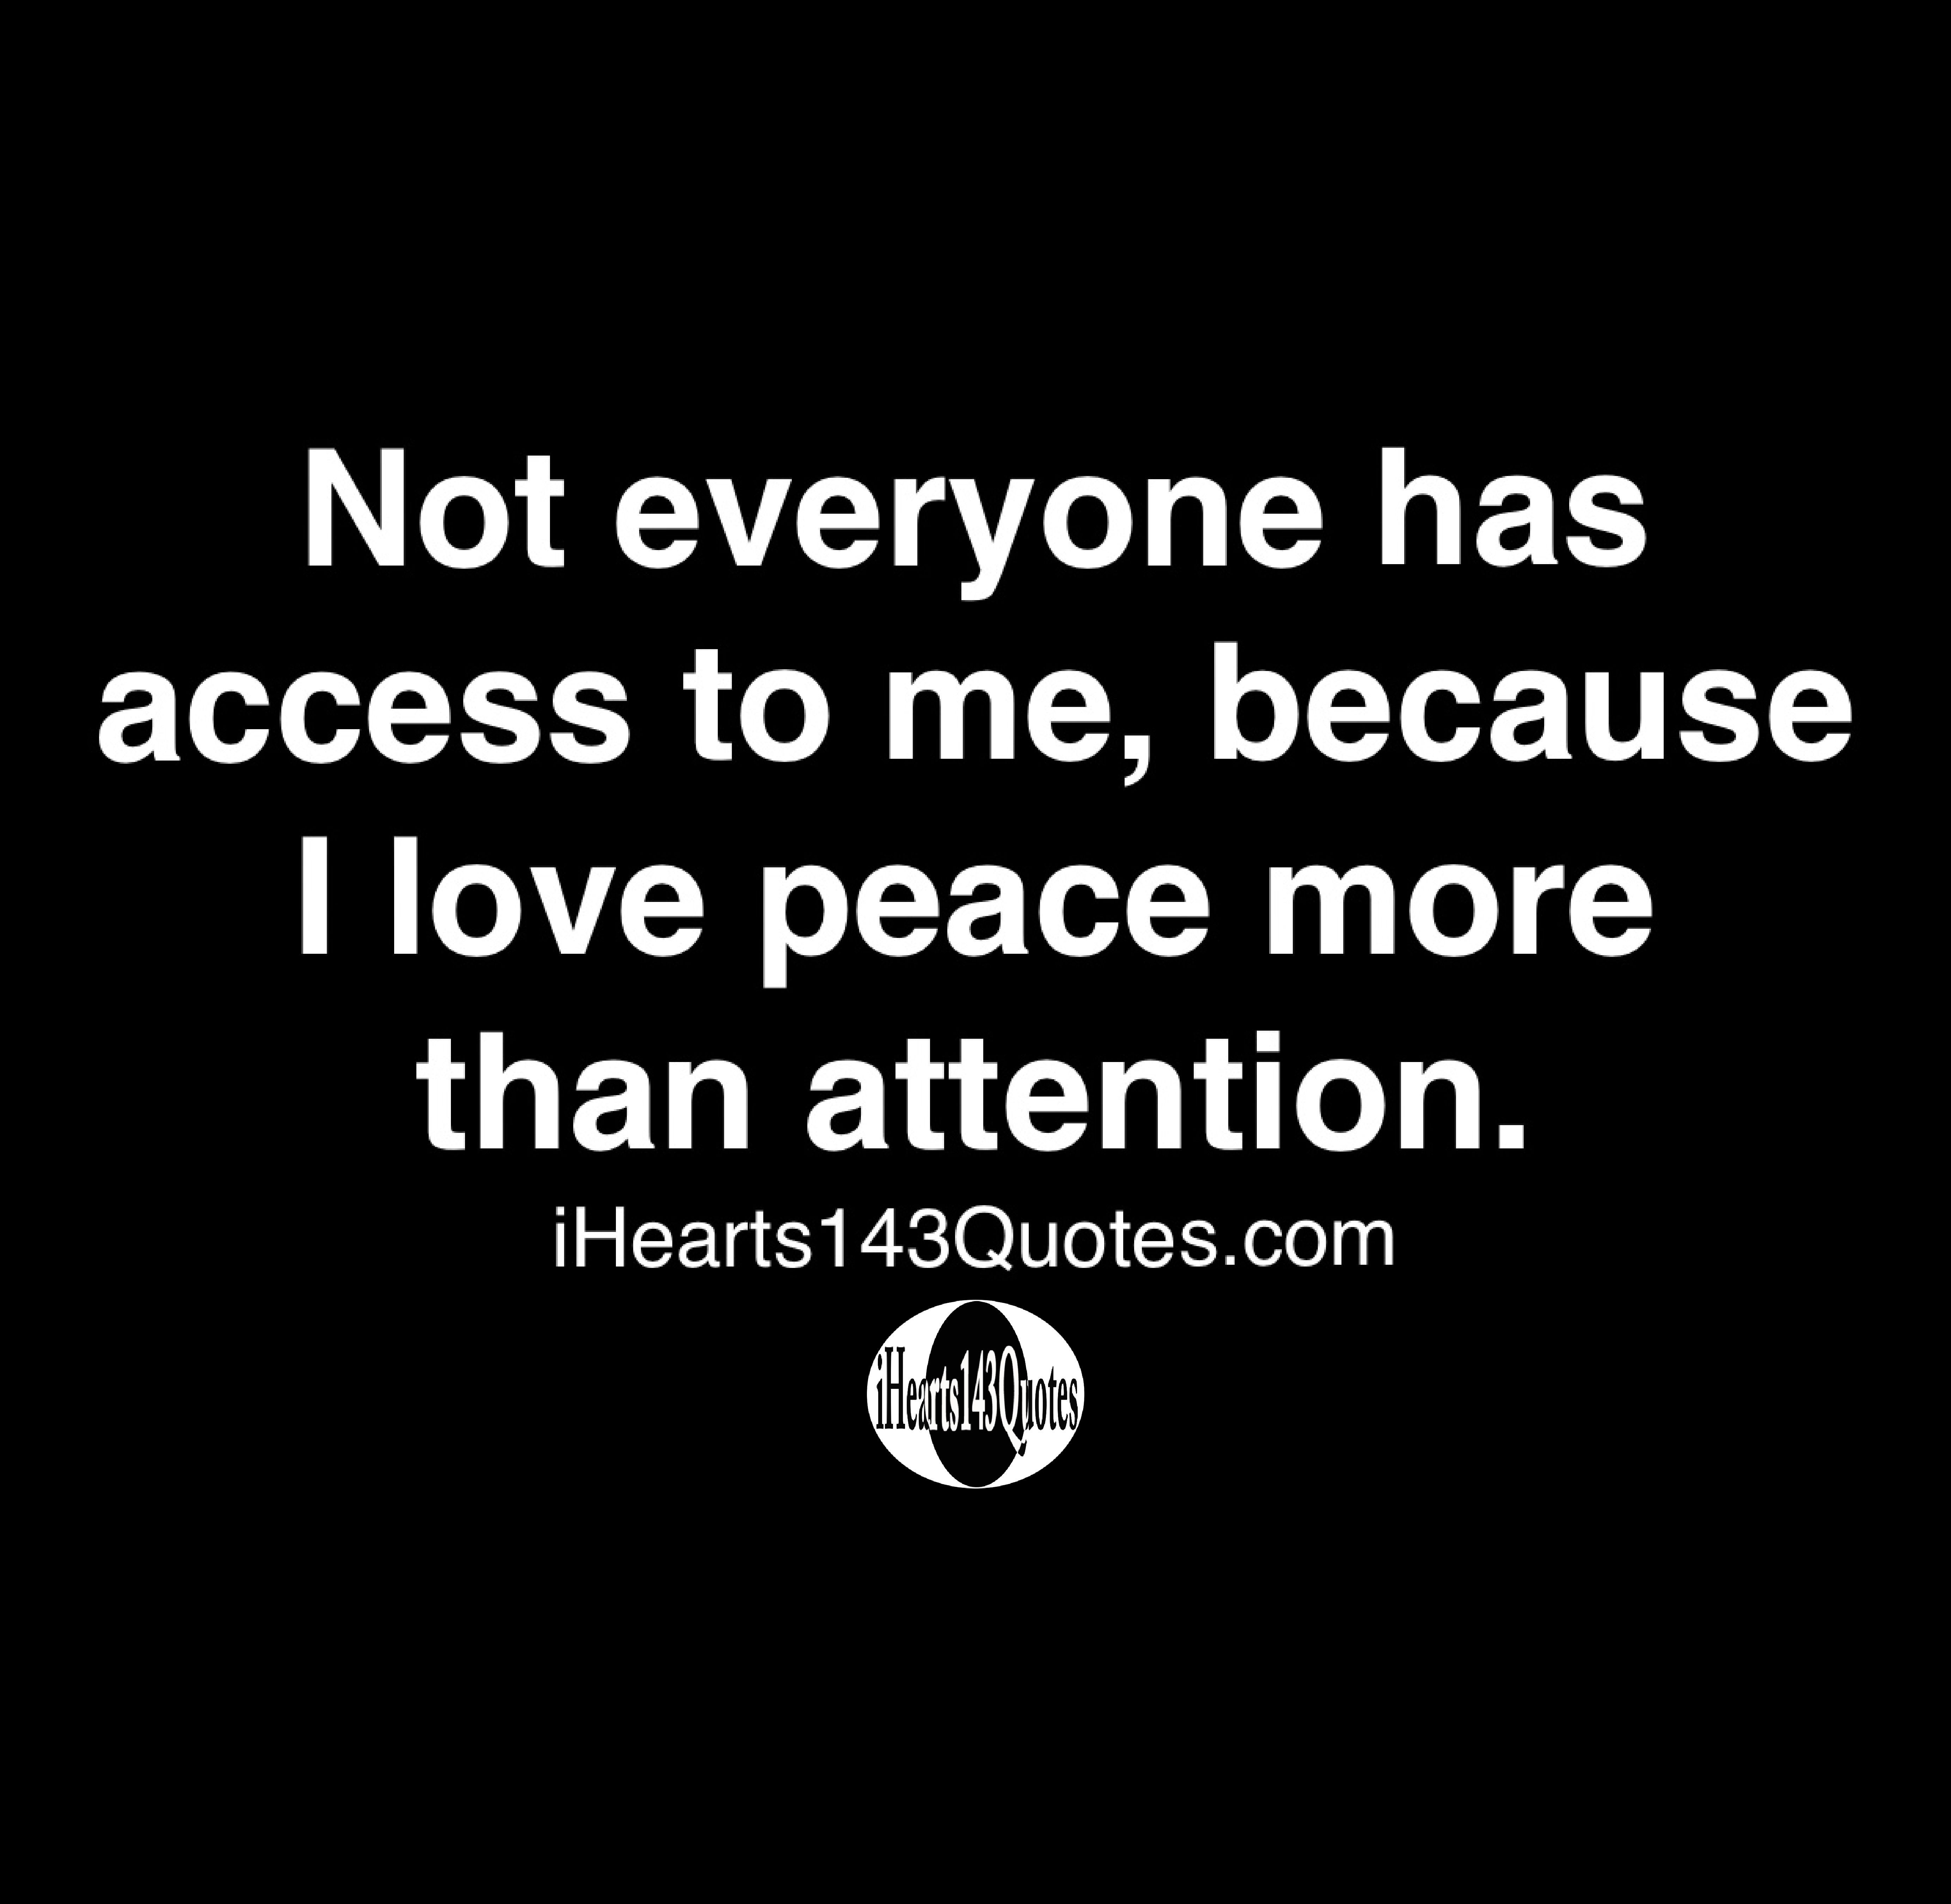 Not everyone has access to me, because I love peace more than attention - Quotes